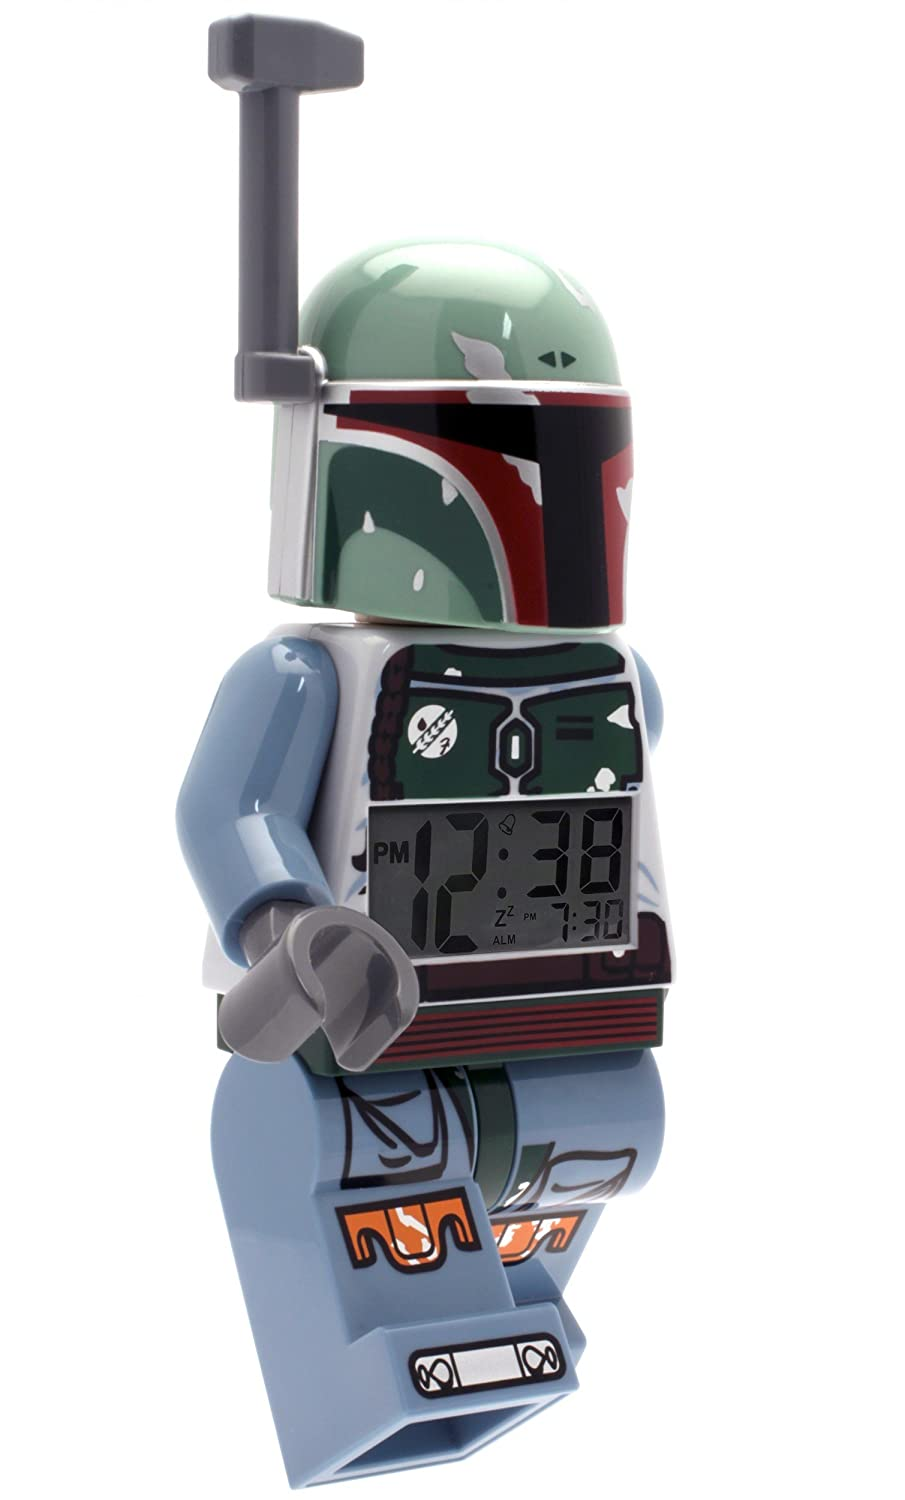 LCD display 9.5 inches tall plastic green//blue LEGO Star Wars Boba Fett Kids Minifigure Light Up Alarm Clock official LEGO CLOCKS WATCHES 9003530 Accessory Consumer Accessories boy girl